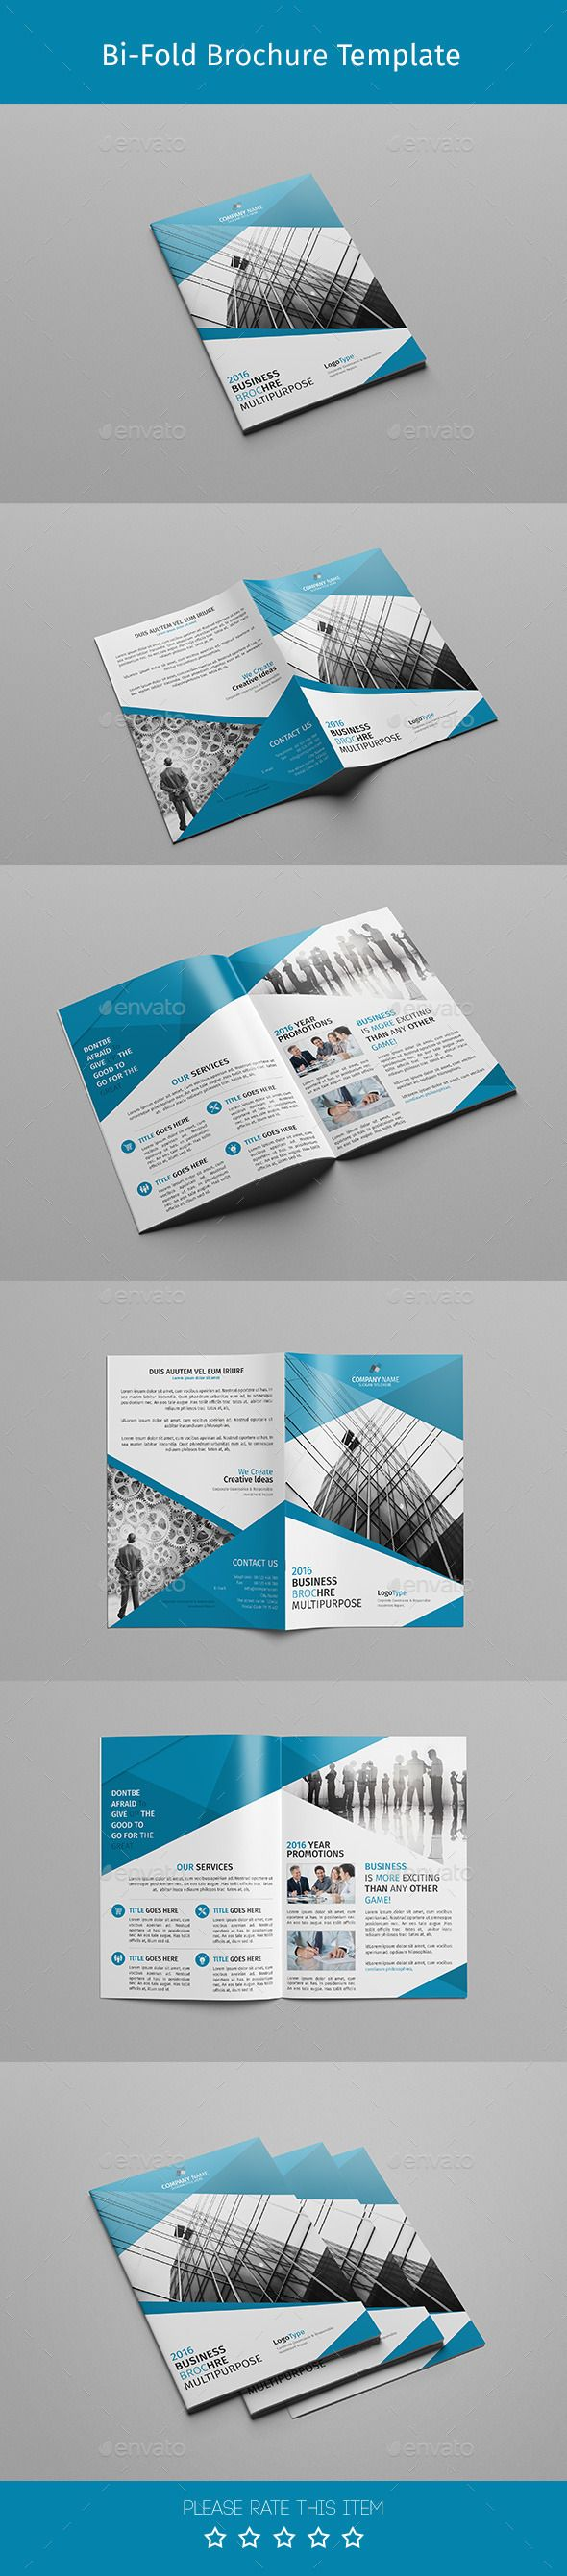 Multipurpose Corporate Bi-fold Brochure Template PSD #design Download: http://graphicriver.net/item/corporate-bifold-brochuremultipurpose-02/14140046?ref=ksioks